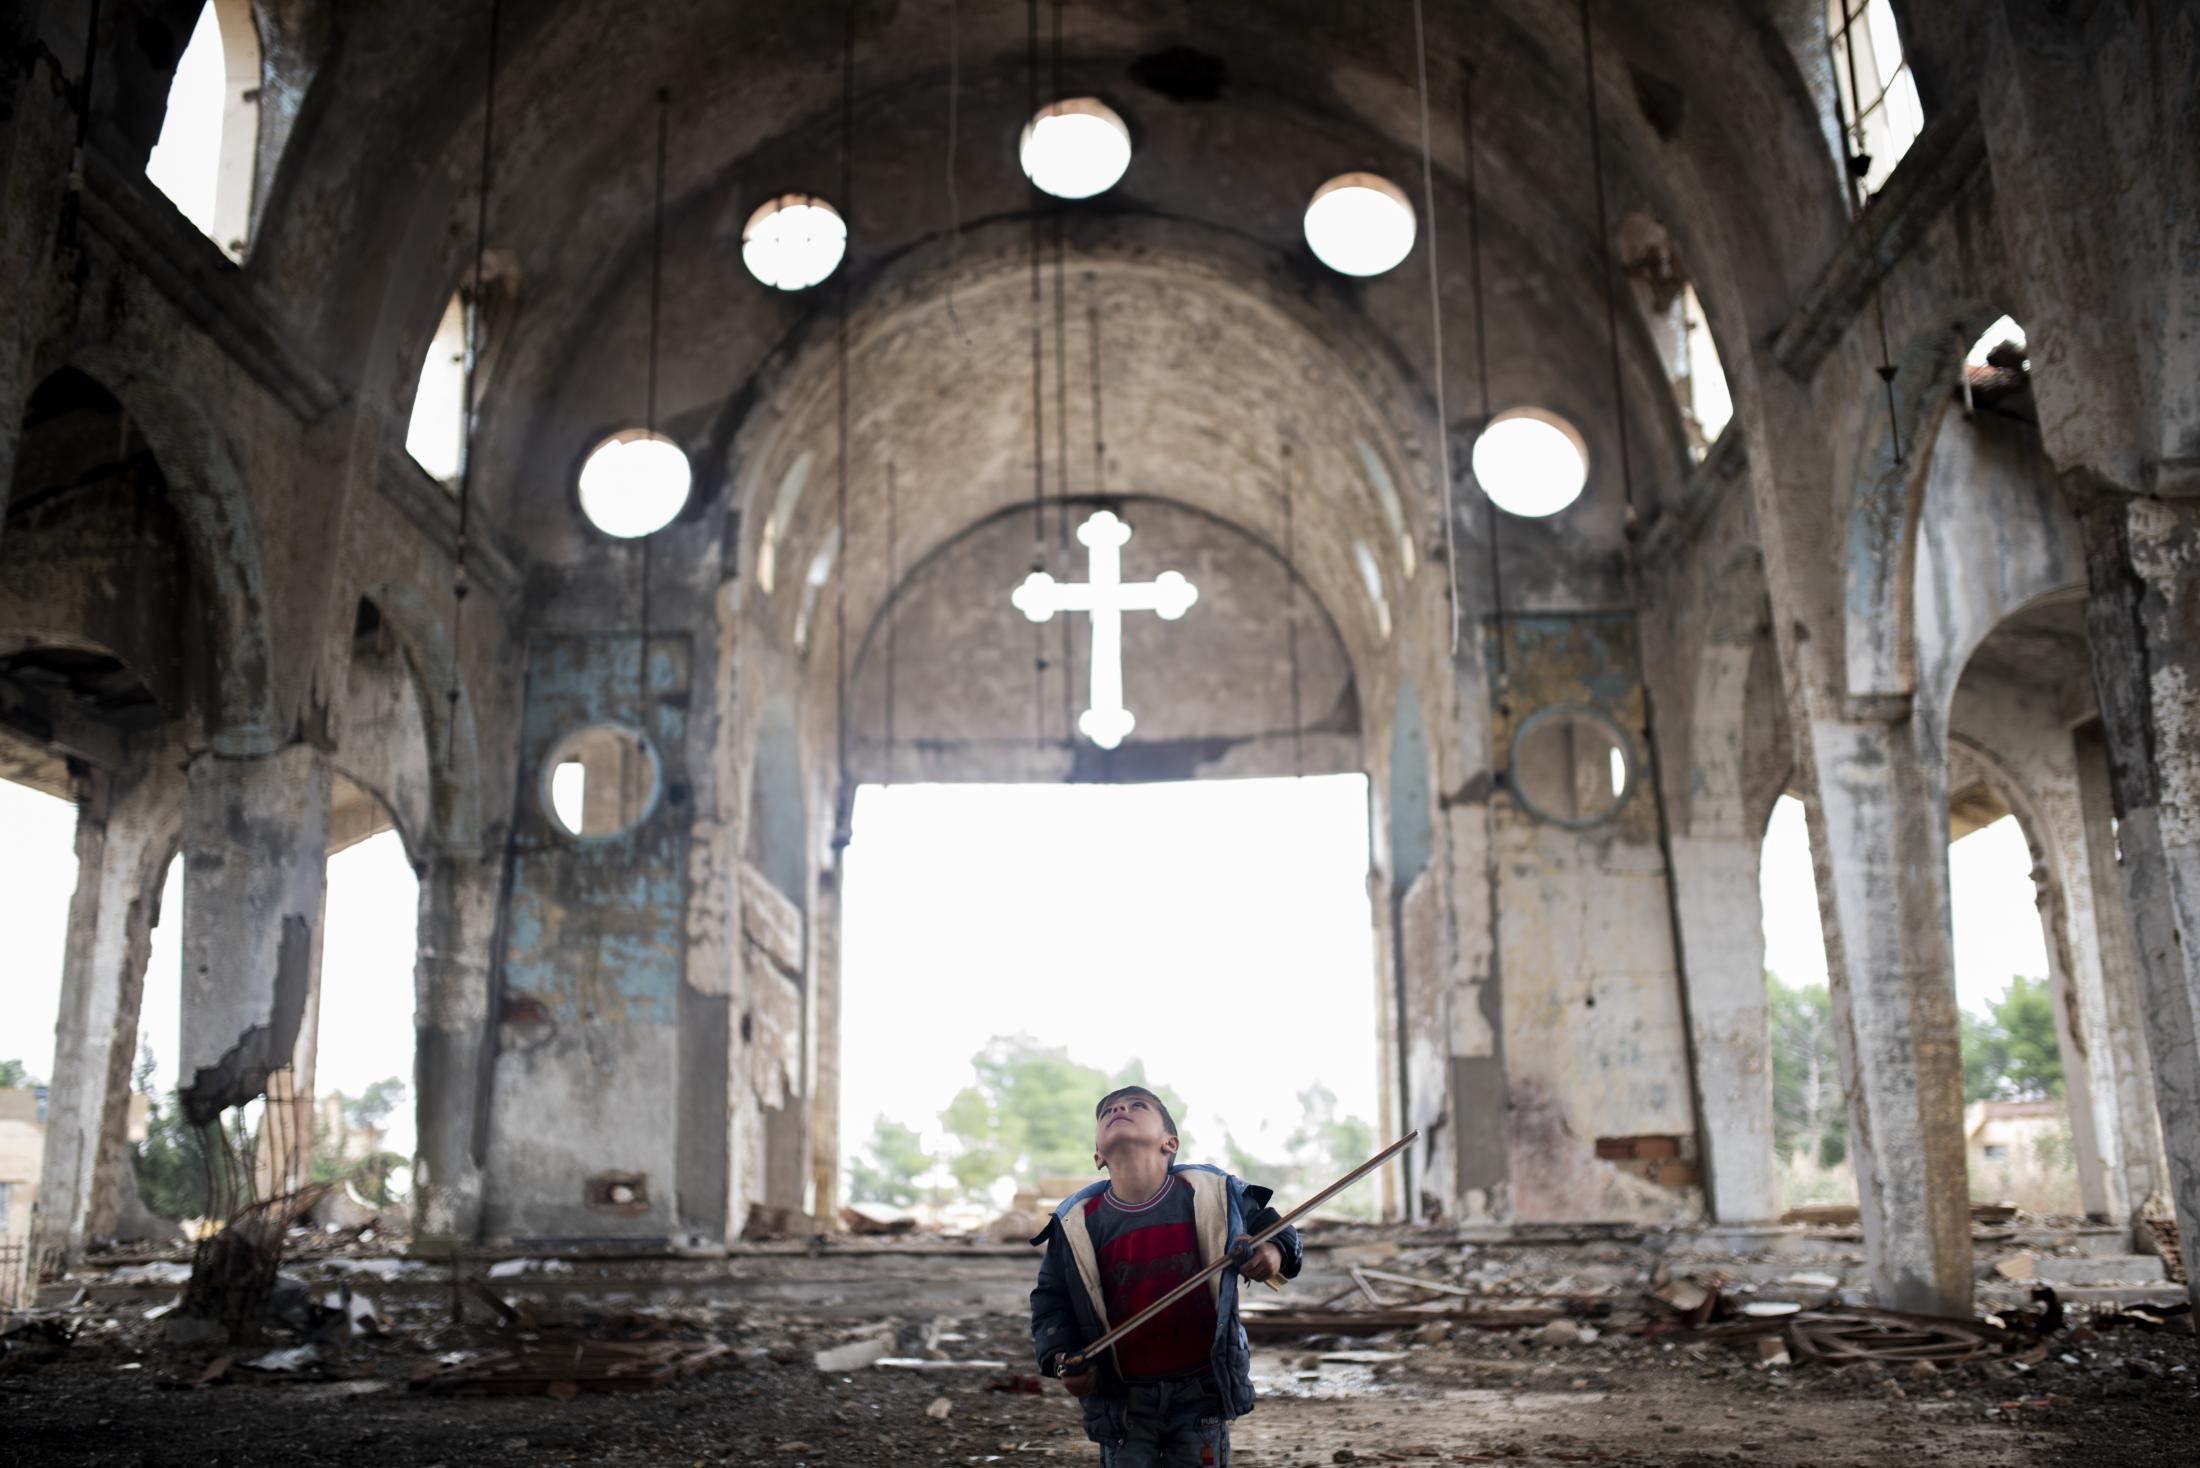 Child playing war games inside a destroyed church by ISIS in Tel Nasri town, near the frontline in the war against yihadist and Turkey. After the withdrawal of US troops from northern Syria in October 2019, Turkey launched an offensive against the predominantly Kurdish areas in the northeast of the country along Islamist forces. Calls for war crimes investigations into the conduct of Ankara-backed militias are mounting ever since. (Andoni Lubaki / Euskal Fondoa)